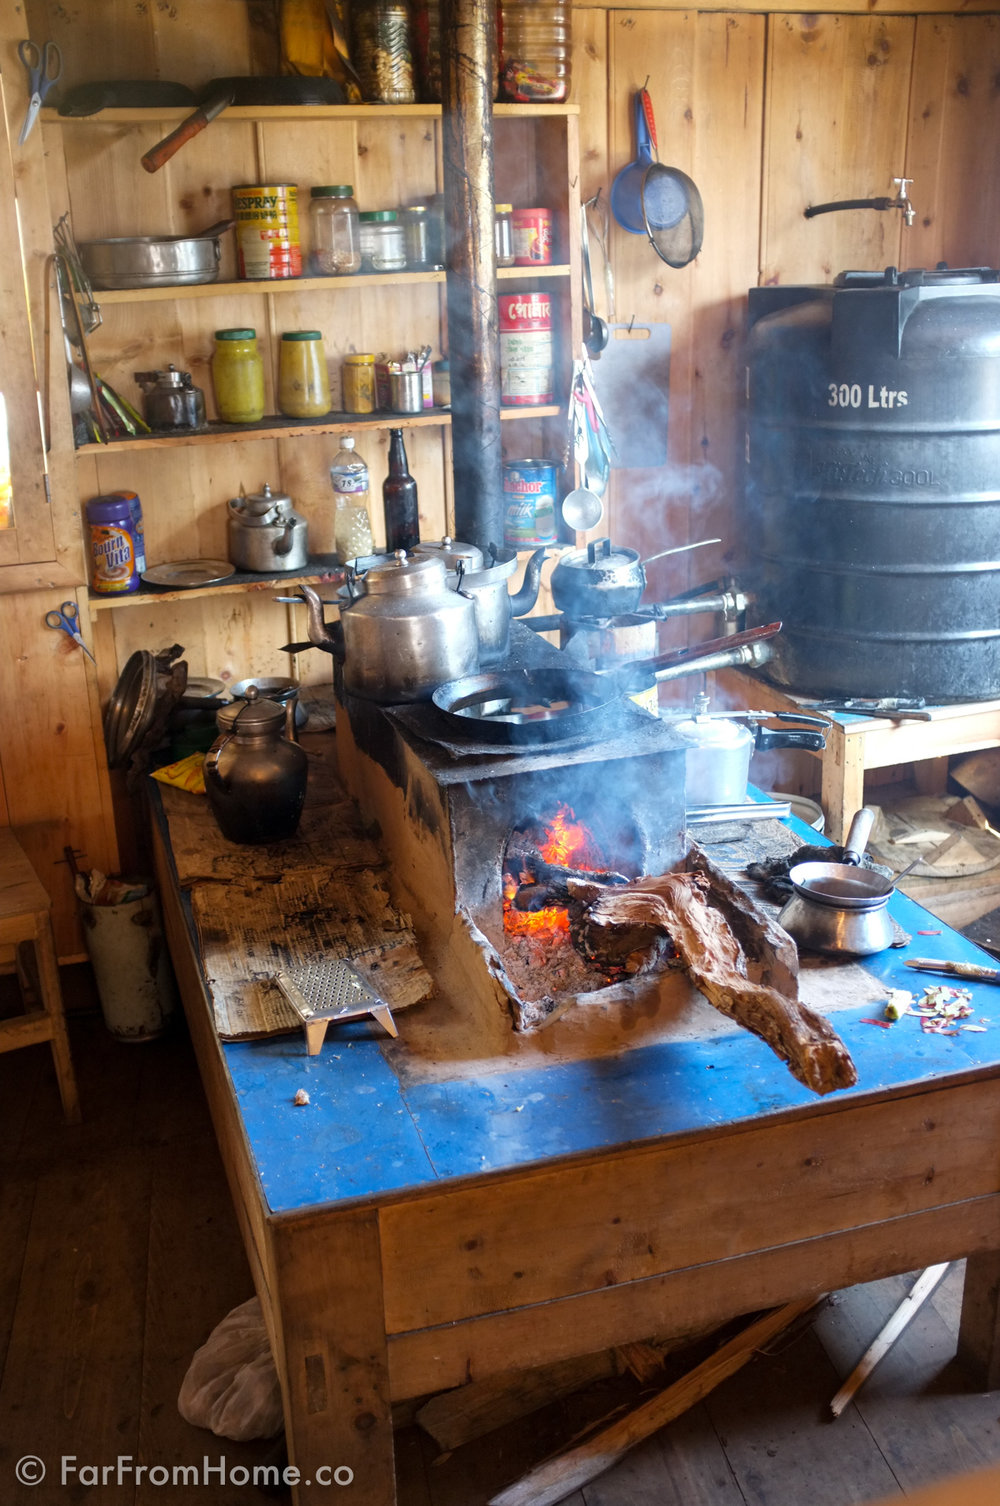 A lot of people use wood-fired stoves for cooking